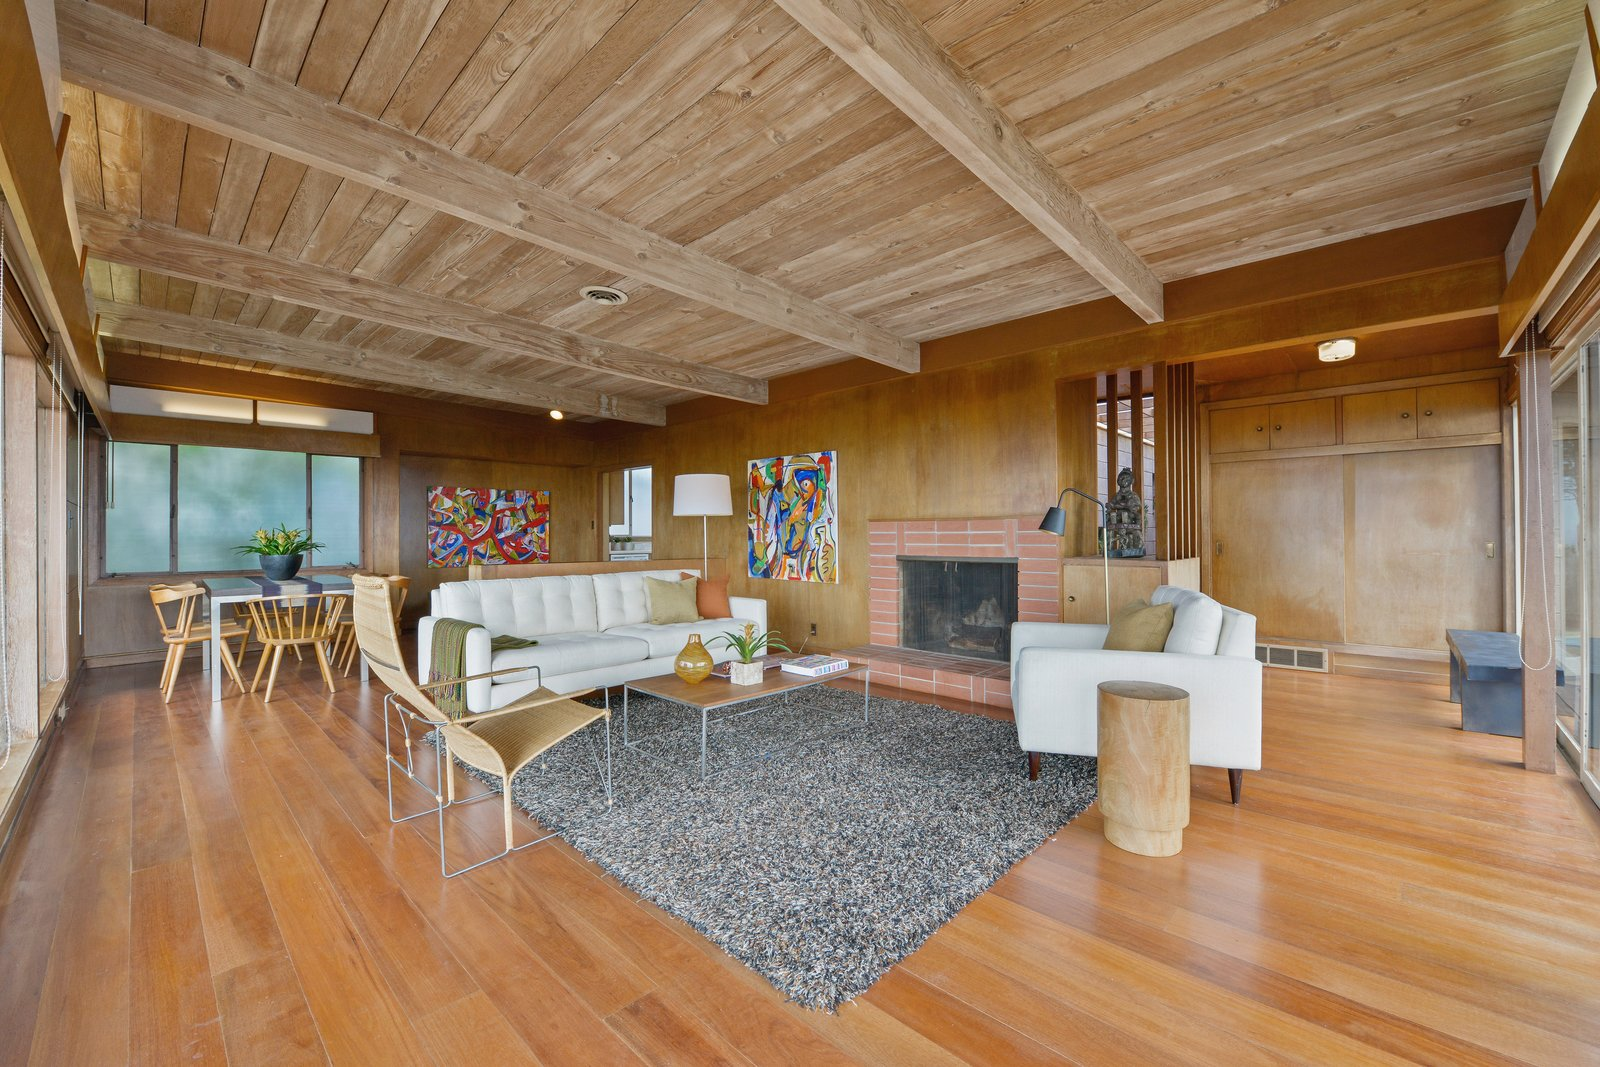 Living, Sofa, Ceiling, Medium Hardwood, Standard Layout, Chair, Wood Burning, Coffee Tables, End Tables, Floor, and Storage The post-and-beam construction of the open-plan living room.  Living Medium Hardwood Standard Layout Storage Photos from A Berkeley Midcentury With Jaw-Dropping Views Asks $945K